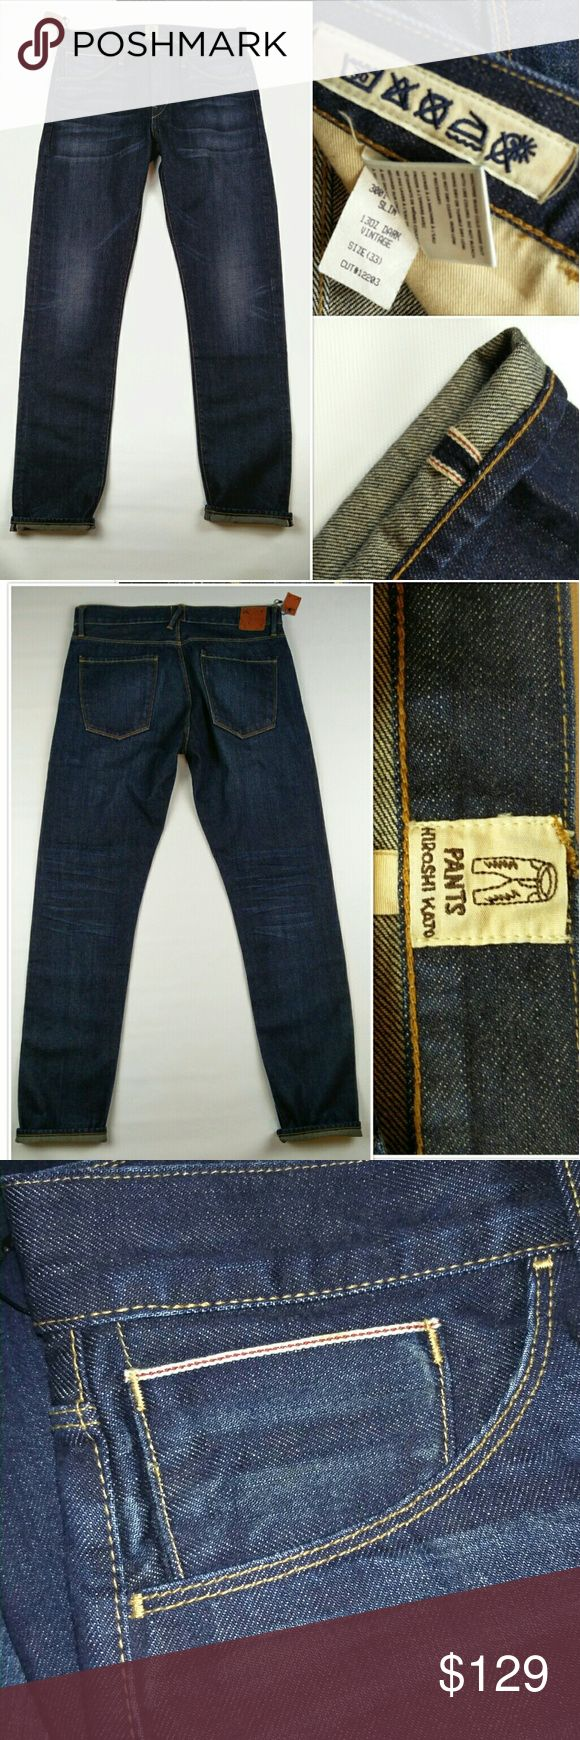 "Hiroshi Kato Japan Selvage Slim Tapered Jeans 30 NWT Hiroshi Kato Men?s Japan Selvage Slim Tapered Jeans Indigo Vintage USA 30  INSEAM 34"" RISE 9.5"" LEG OPENING 7"" Waist 16"" Hips 20"" PETS AND SMOKE FREE HOUSE  WILL SHIP WITHIN 24 HOURS FROM CLEARED PAYMENT HIROSHI KATO Jeans Slim"